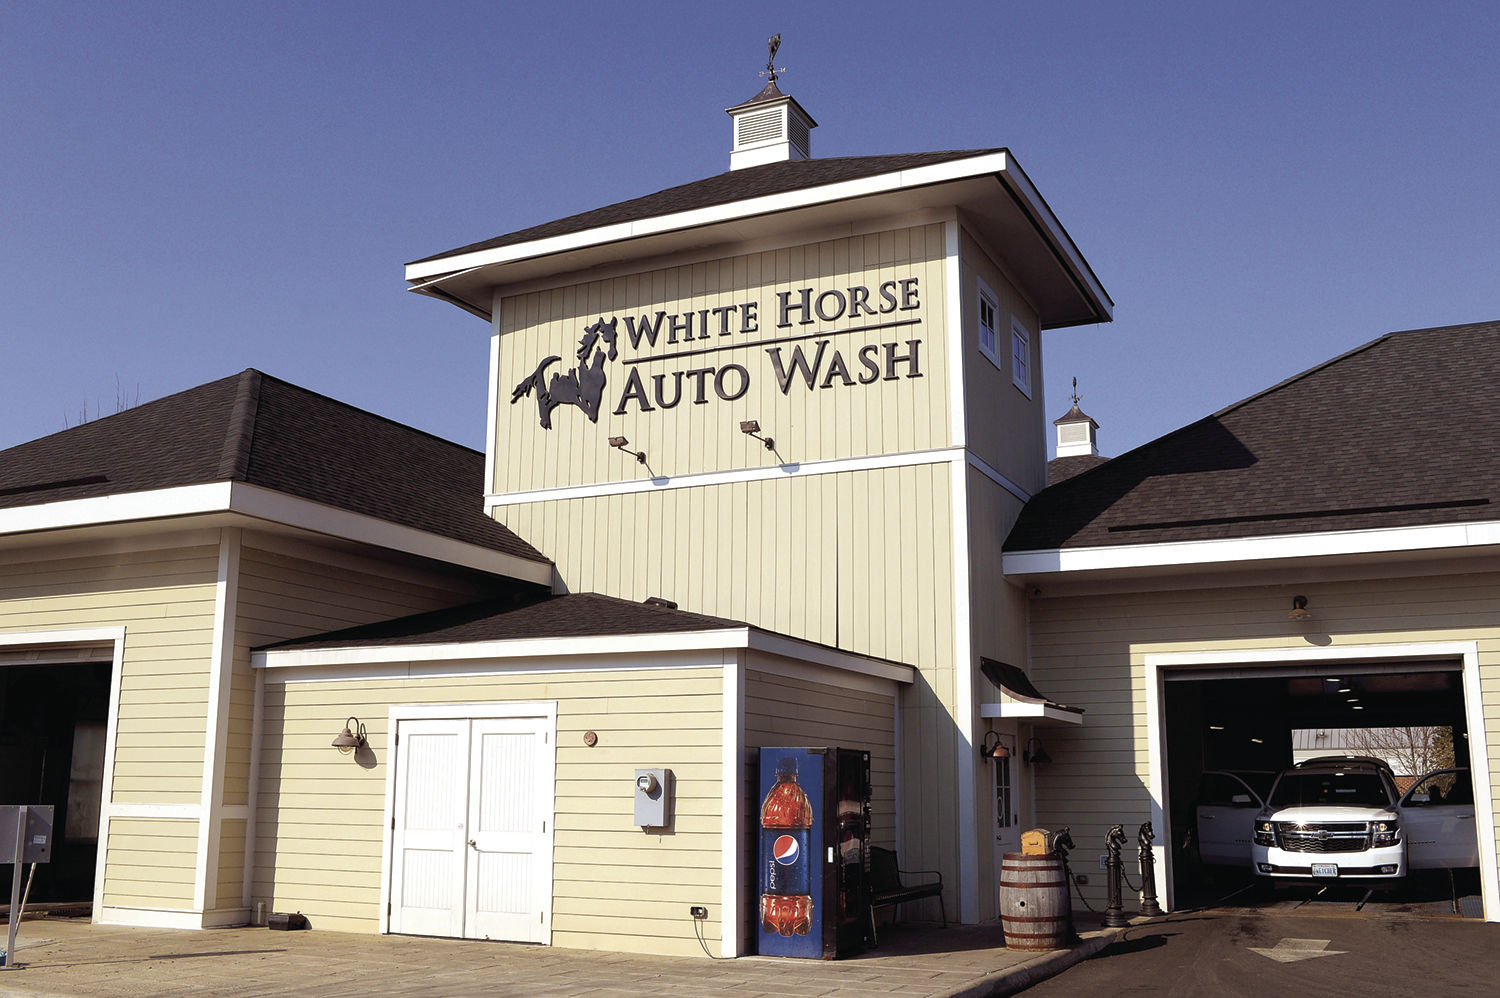 Auto Wash Warrenton Car Wash Owner Expands To Fourth Site News Fauquier